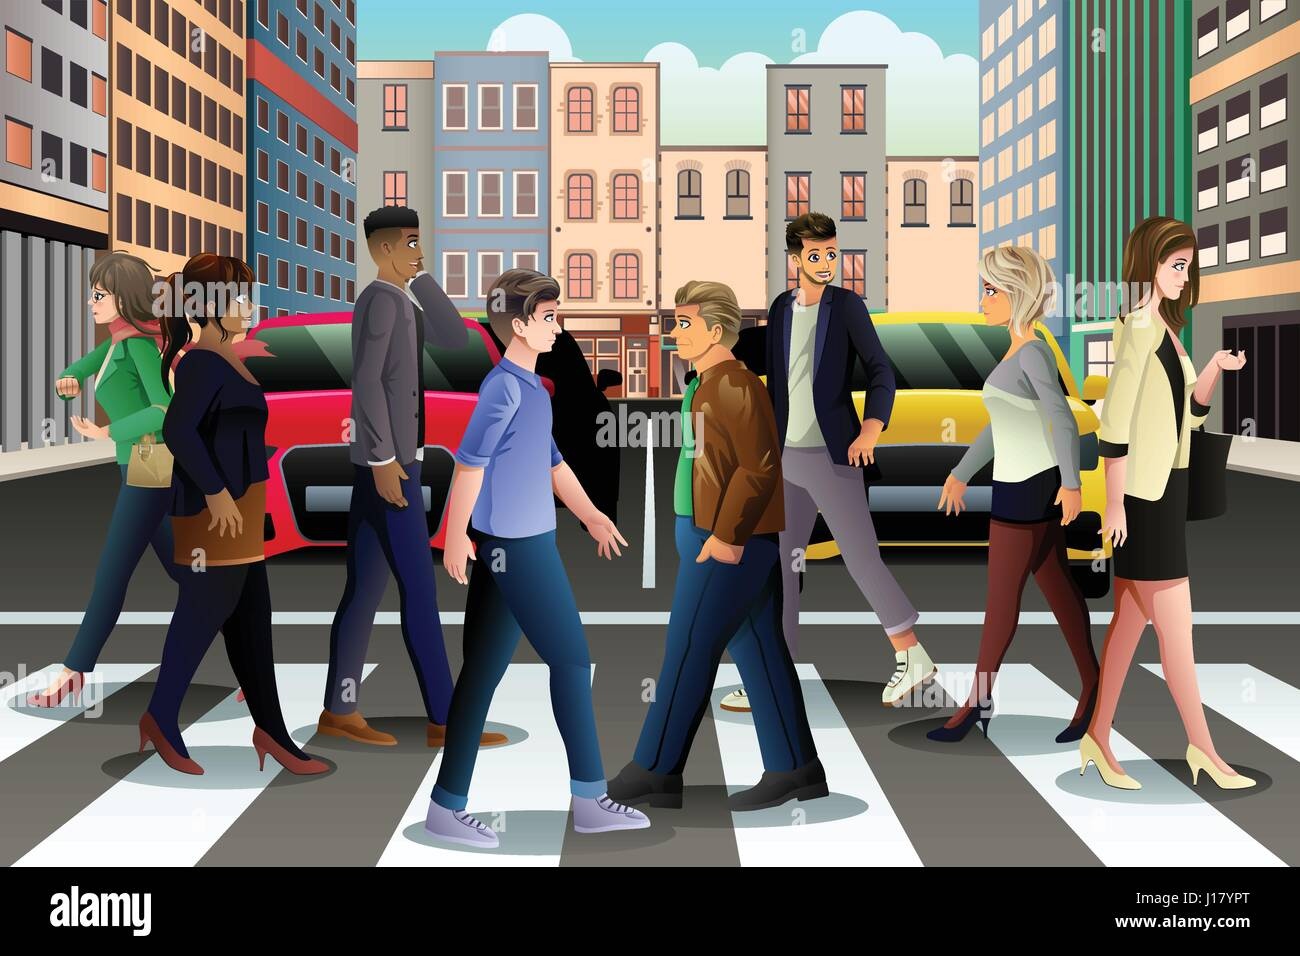 A vector illustration of City People Crossing the Street During Rush Hour - Stock Vector